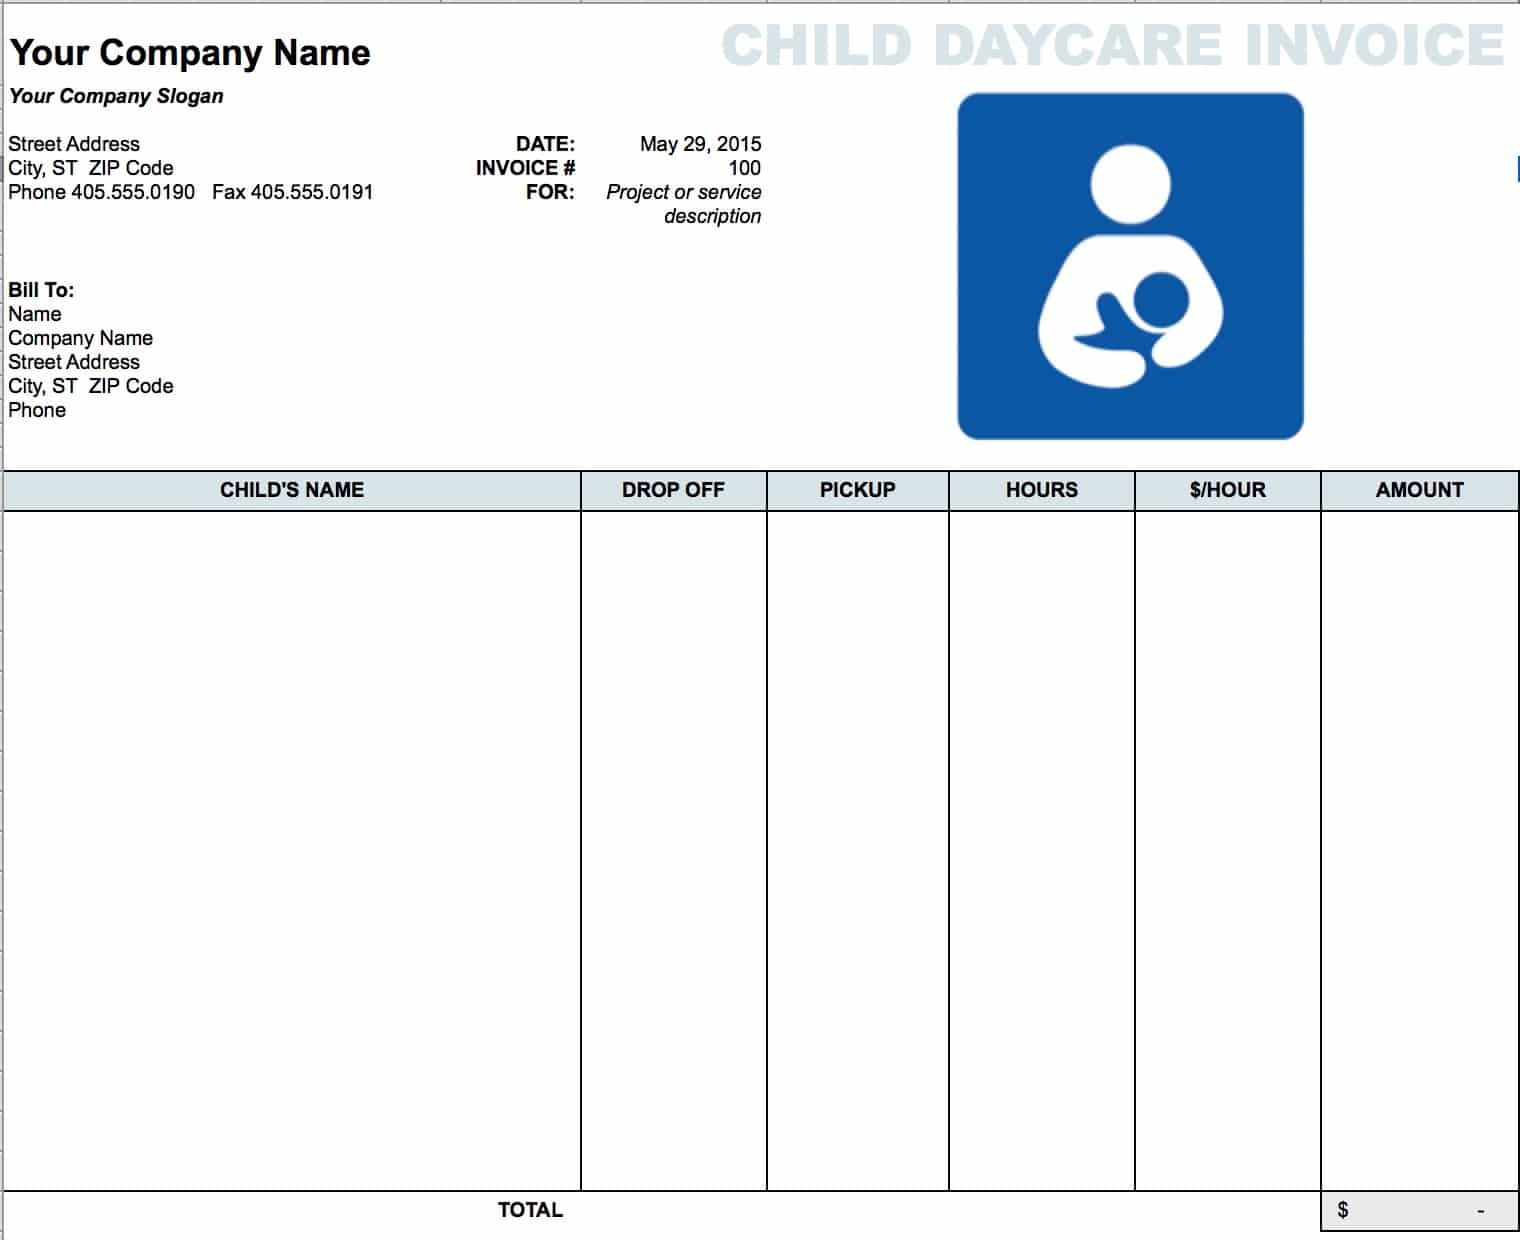 Free Daycare Child Invoice Template Excel PDF Word Doc - Invoice generator free for service business